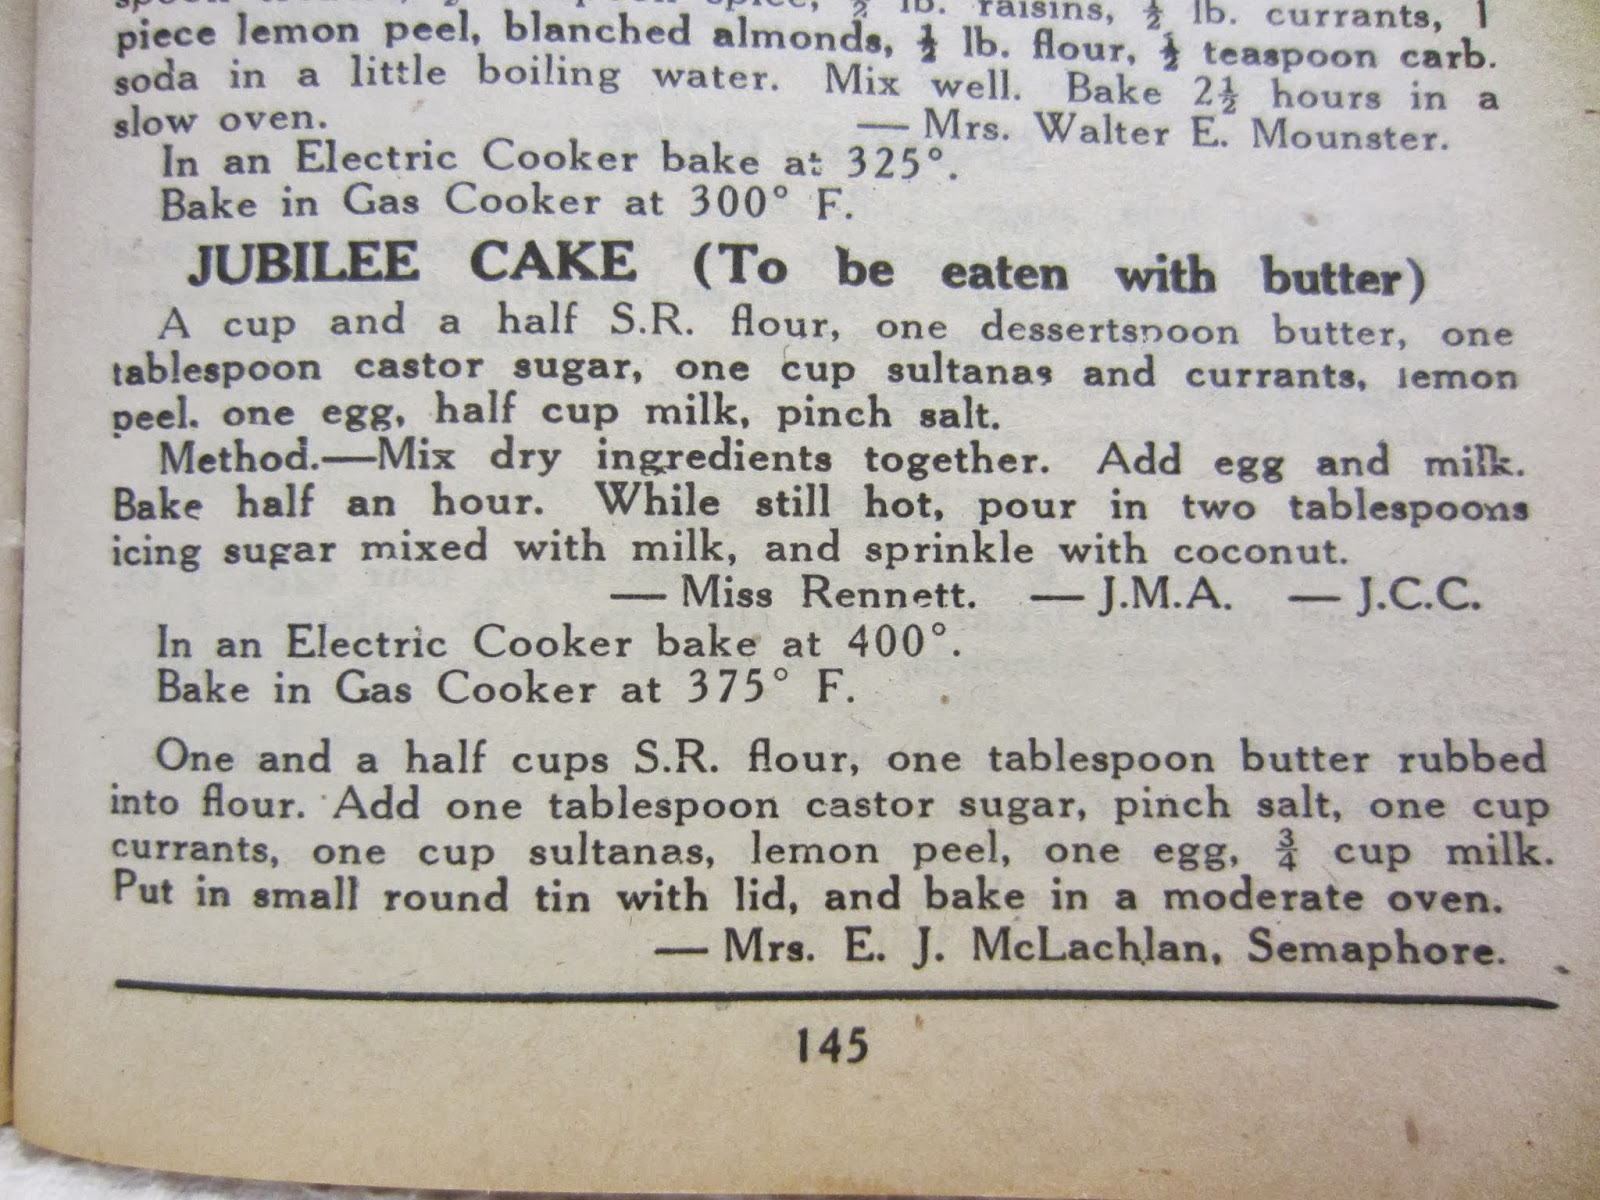 The Jubilee Cake Recipe From Blue Ribbon Cookbook But Recipes Green And Gold Are Quite Similar This Cwa